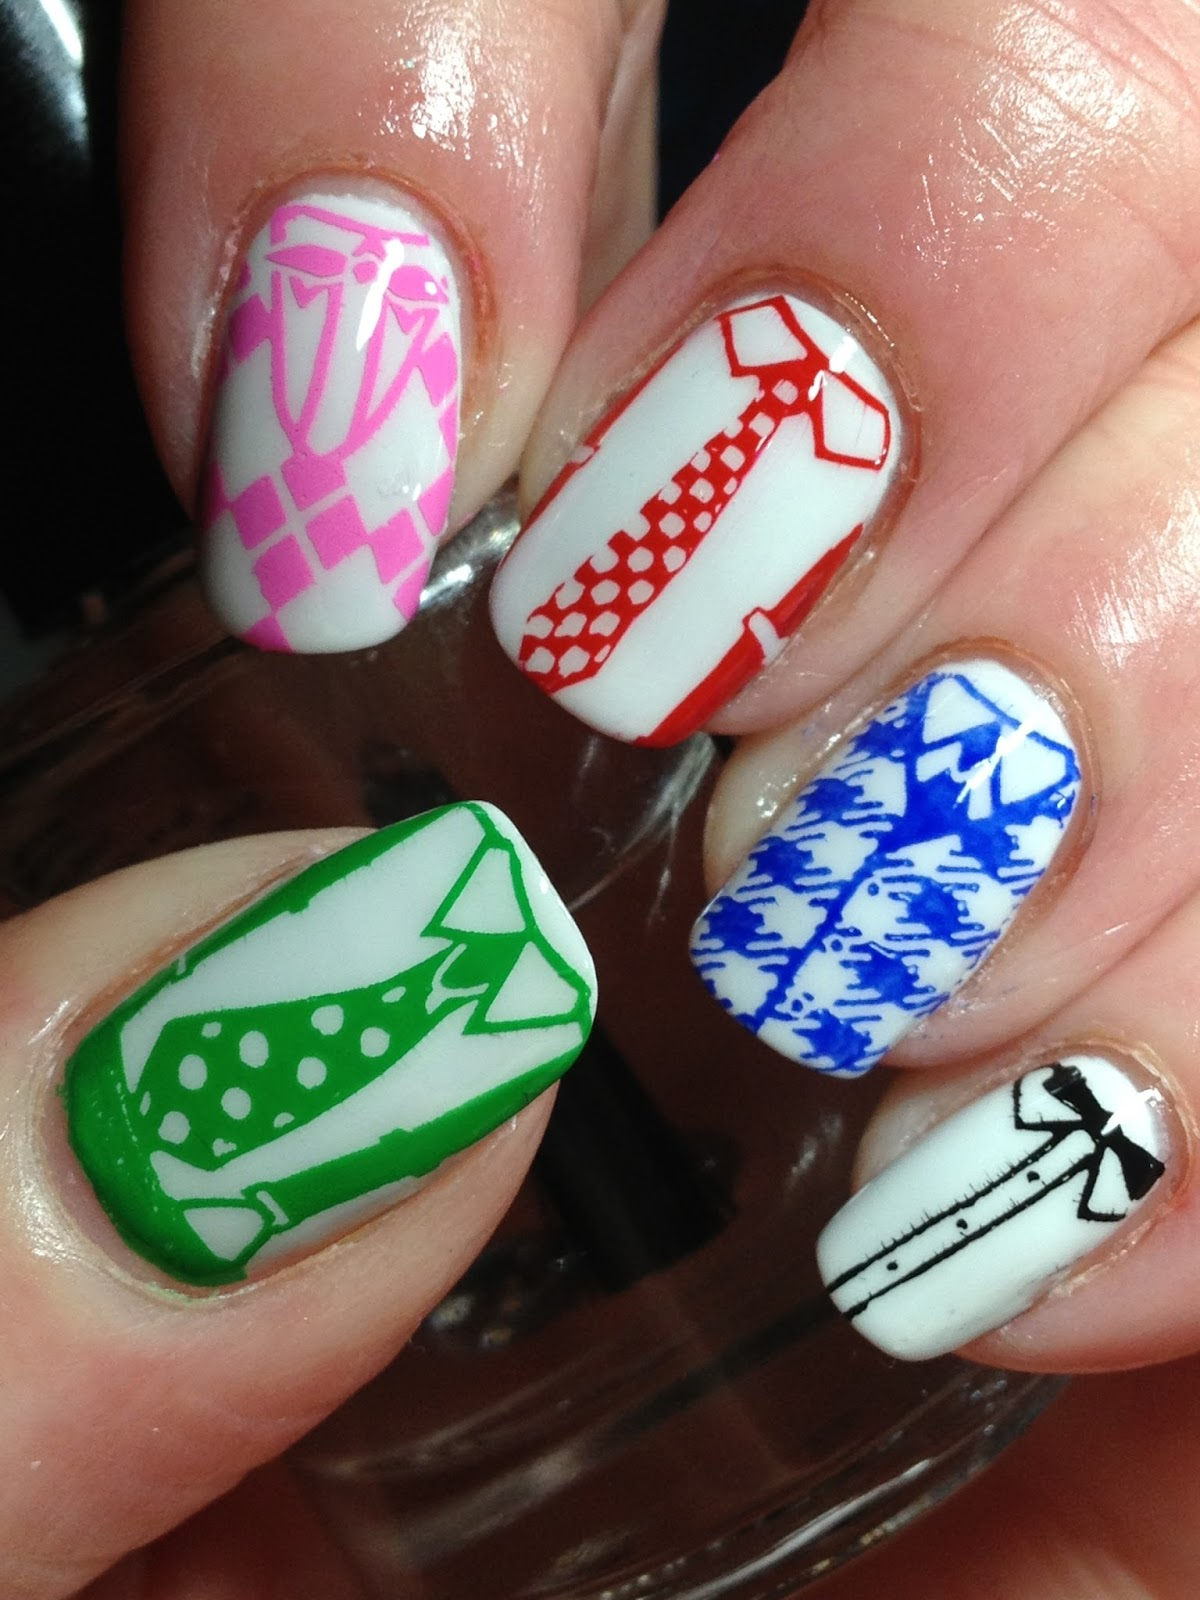 Canadian Nail Fanatic: 40 Great Nail Art Ideas - Geeks!